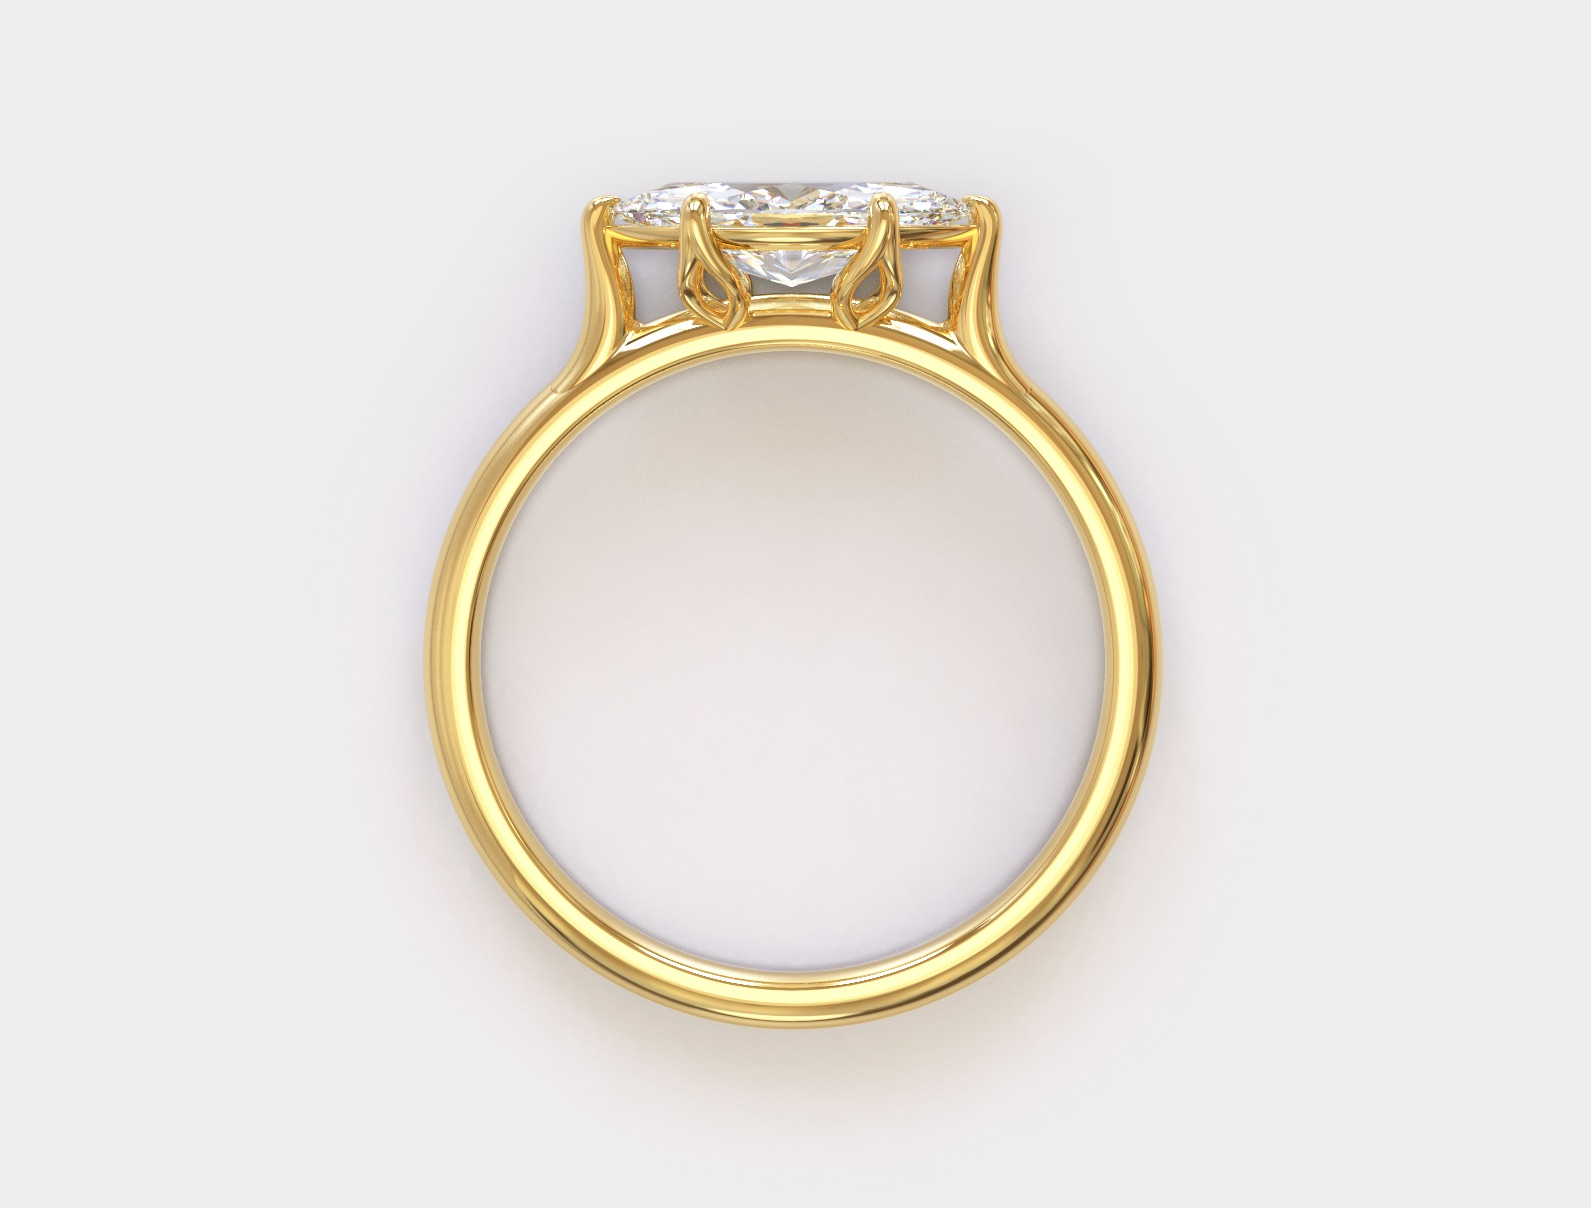 An east-west marquise ring